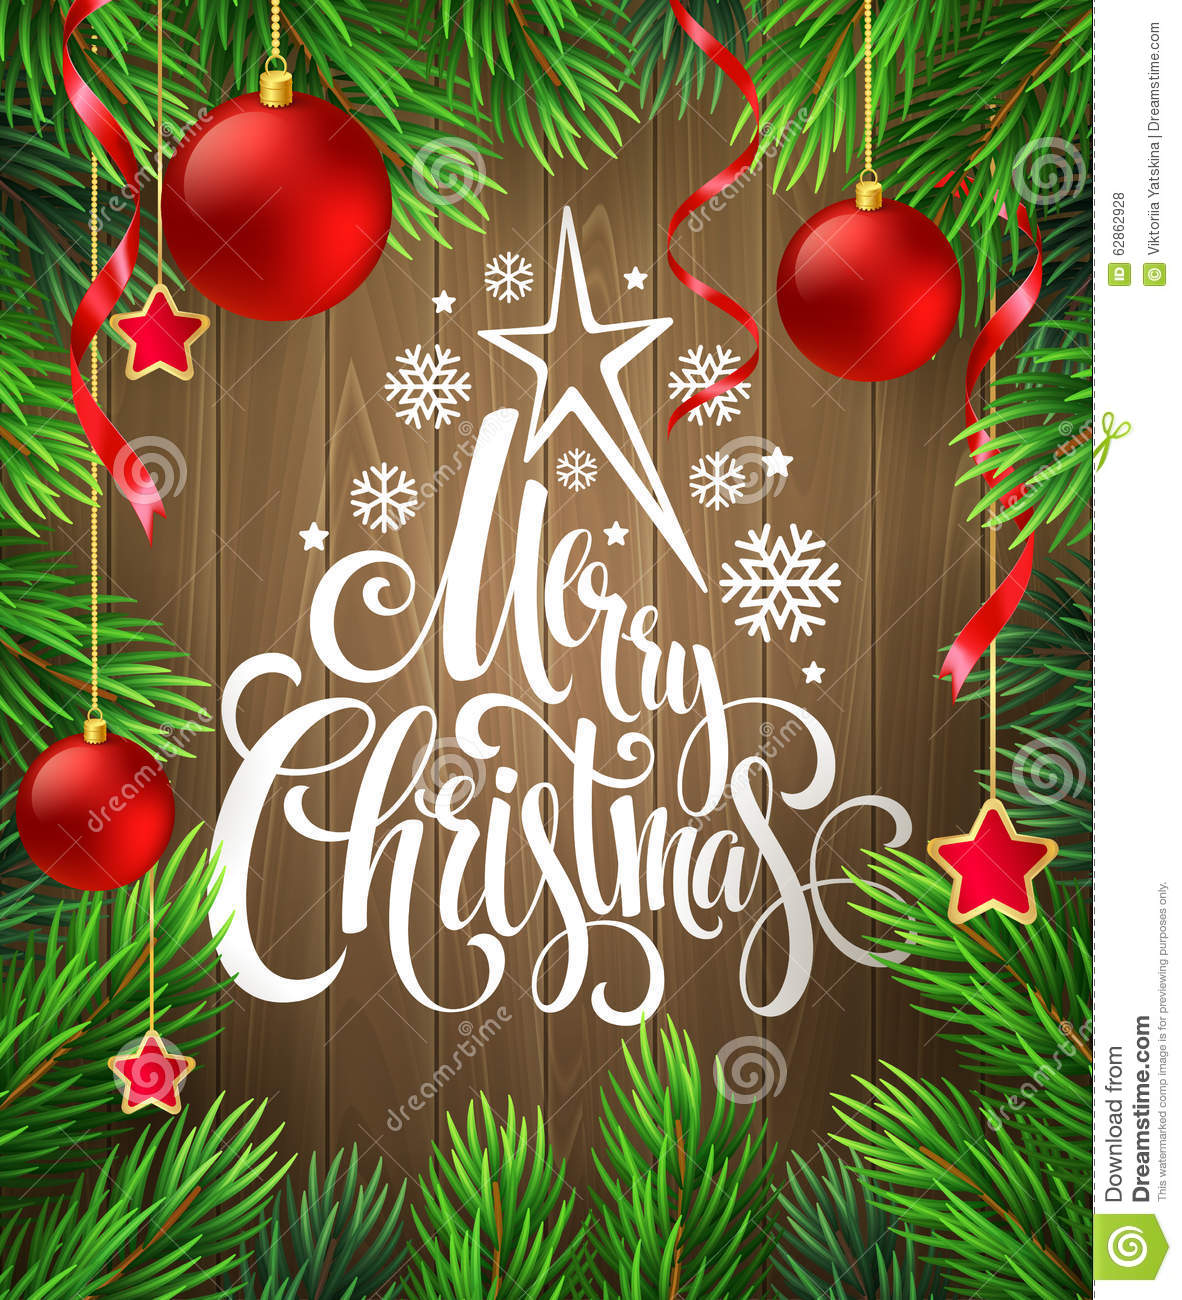 Free christmas poster design templates - Christmas Poster Design Template Vector Stock Vector Image 62862928